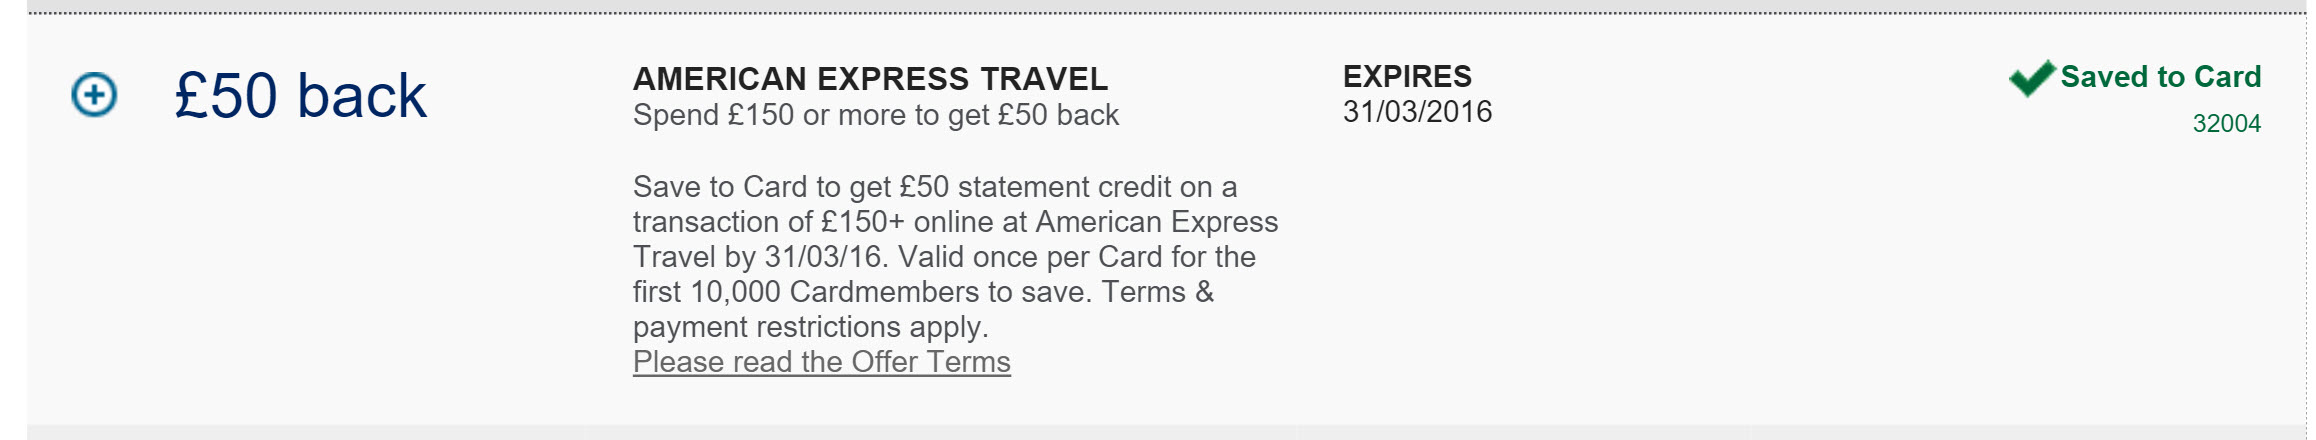 2016-january-amex-travel-cashback